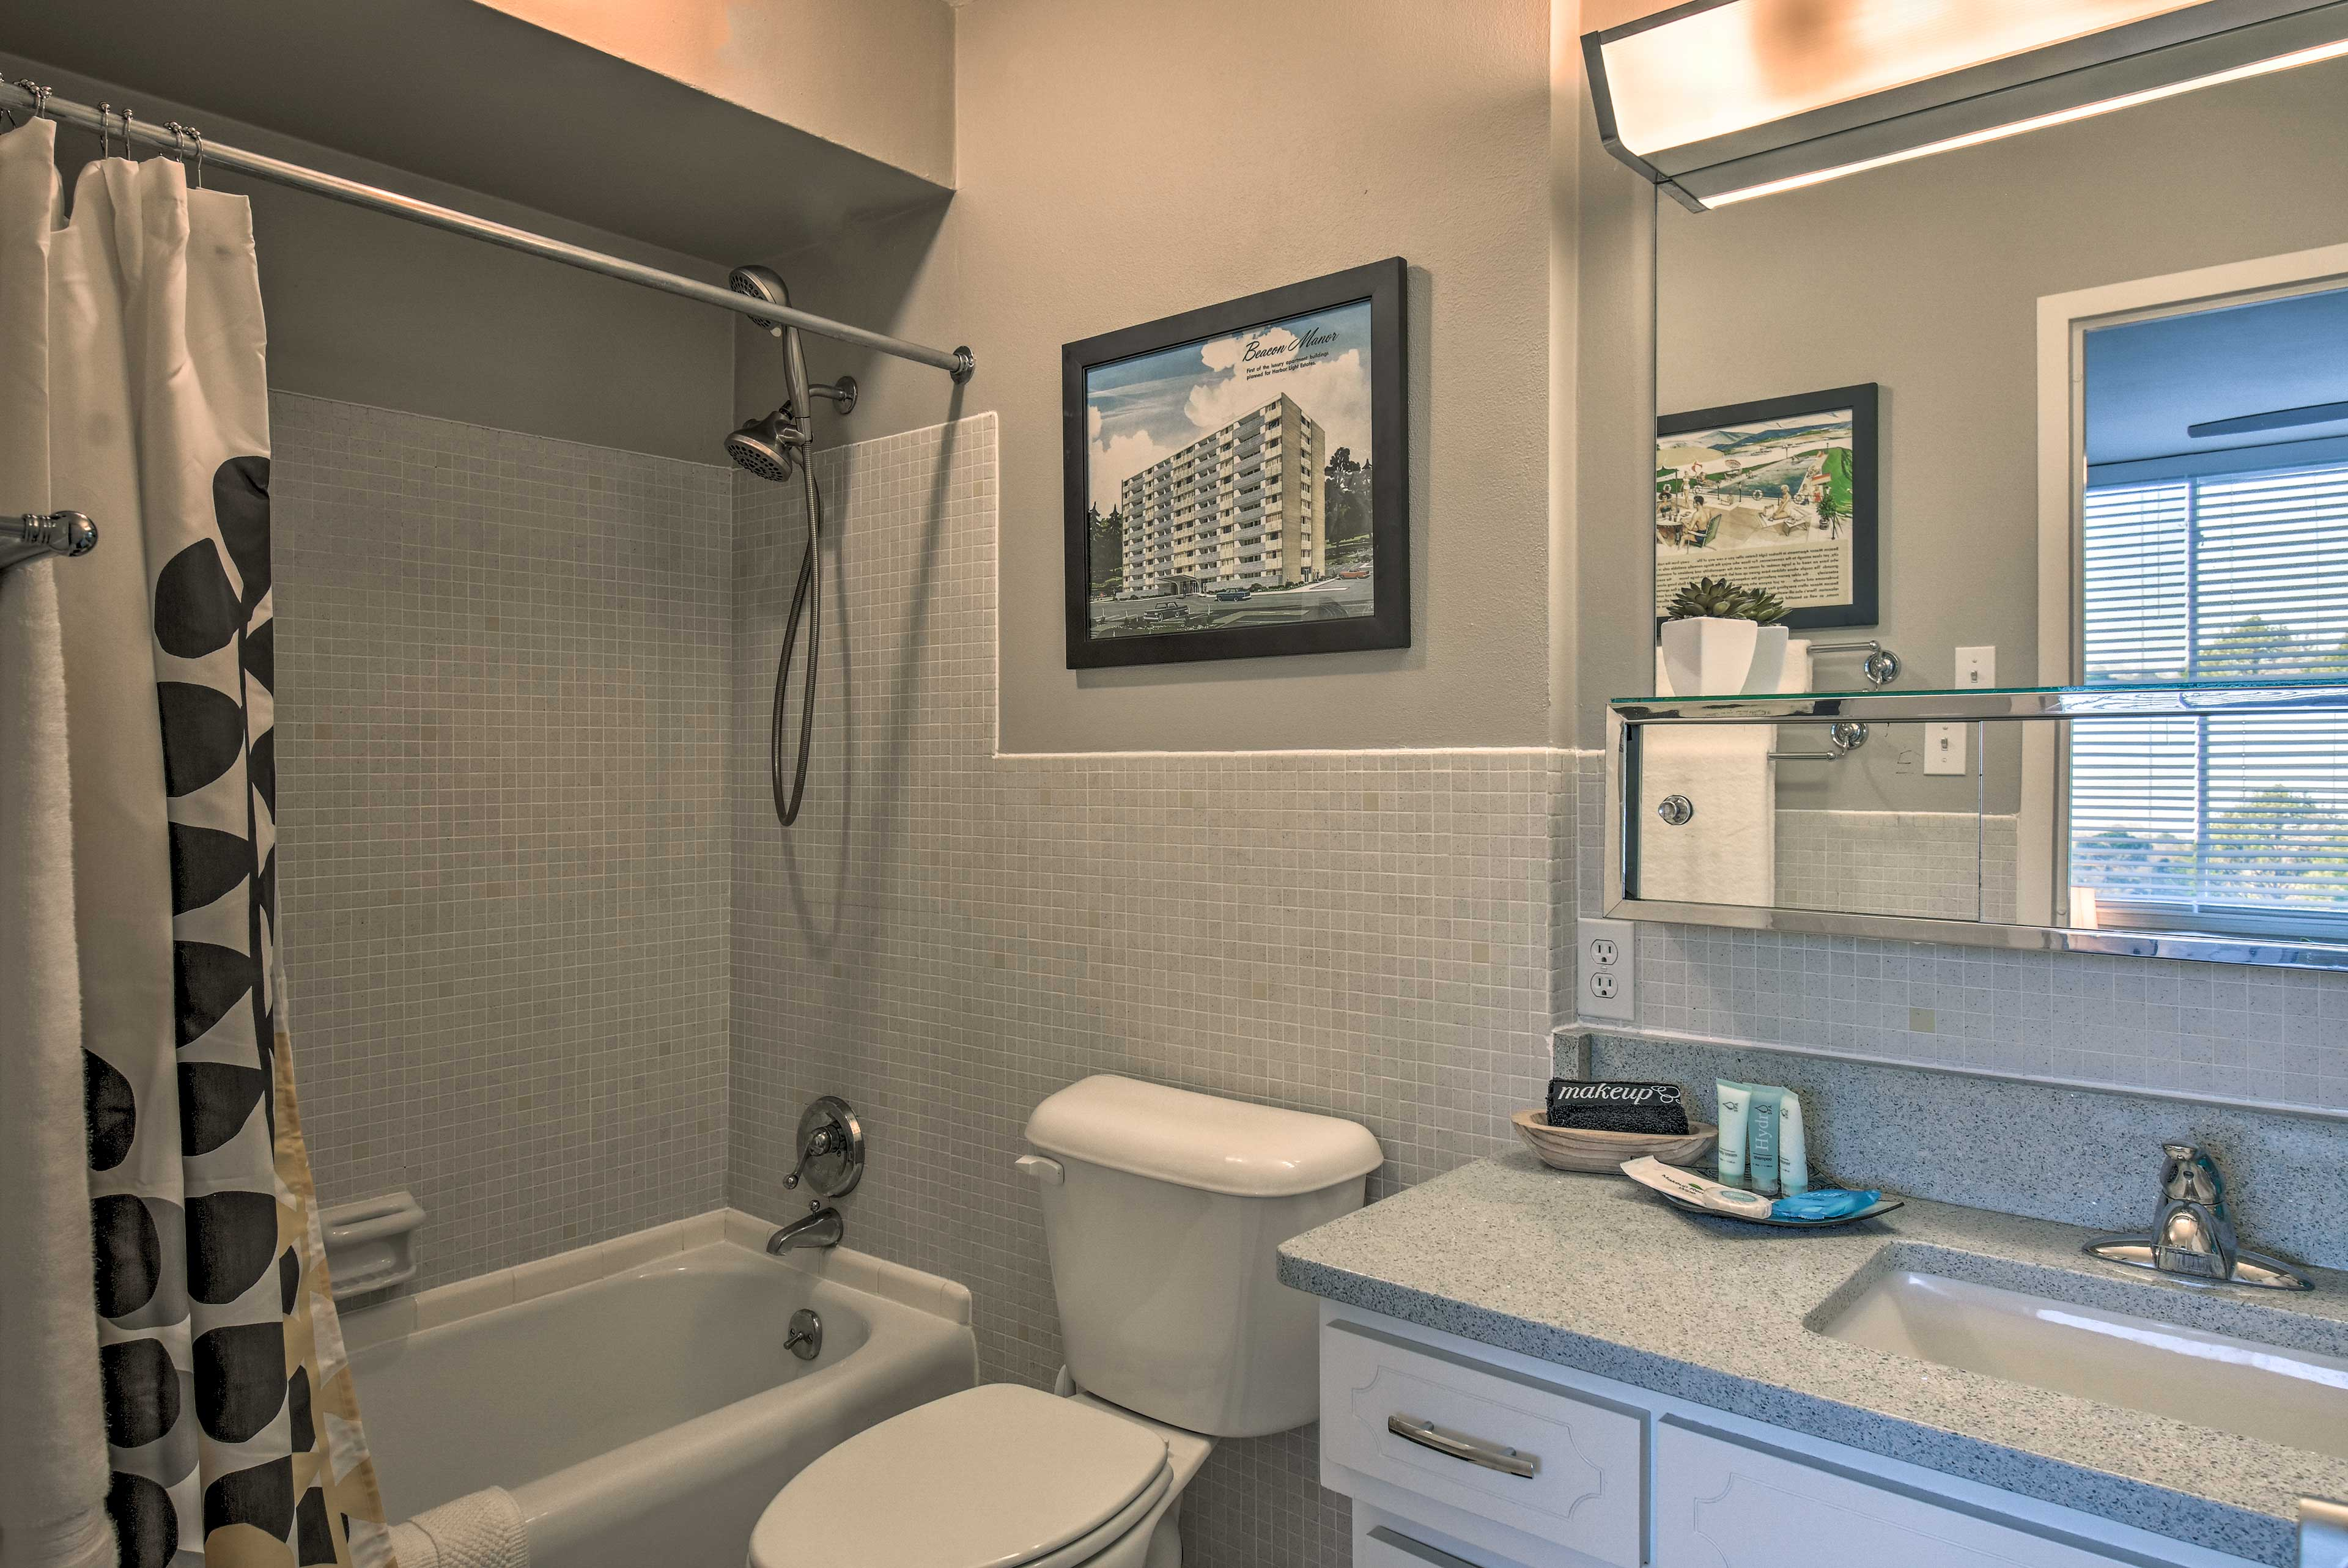 The en-suite bathroom provides privacy and convenience.